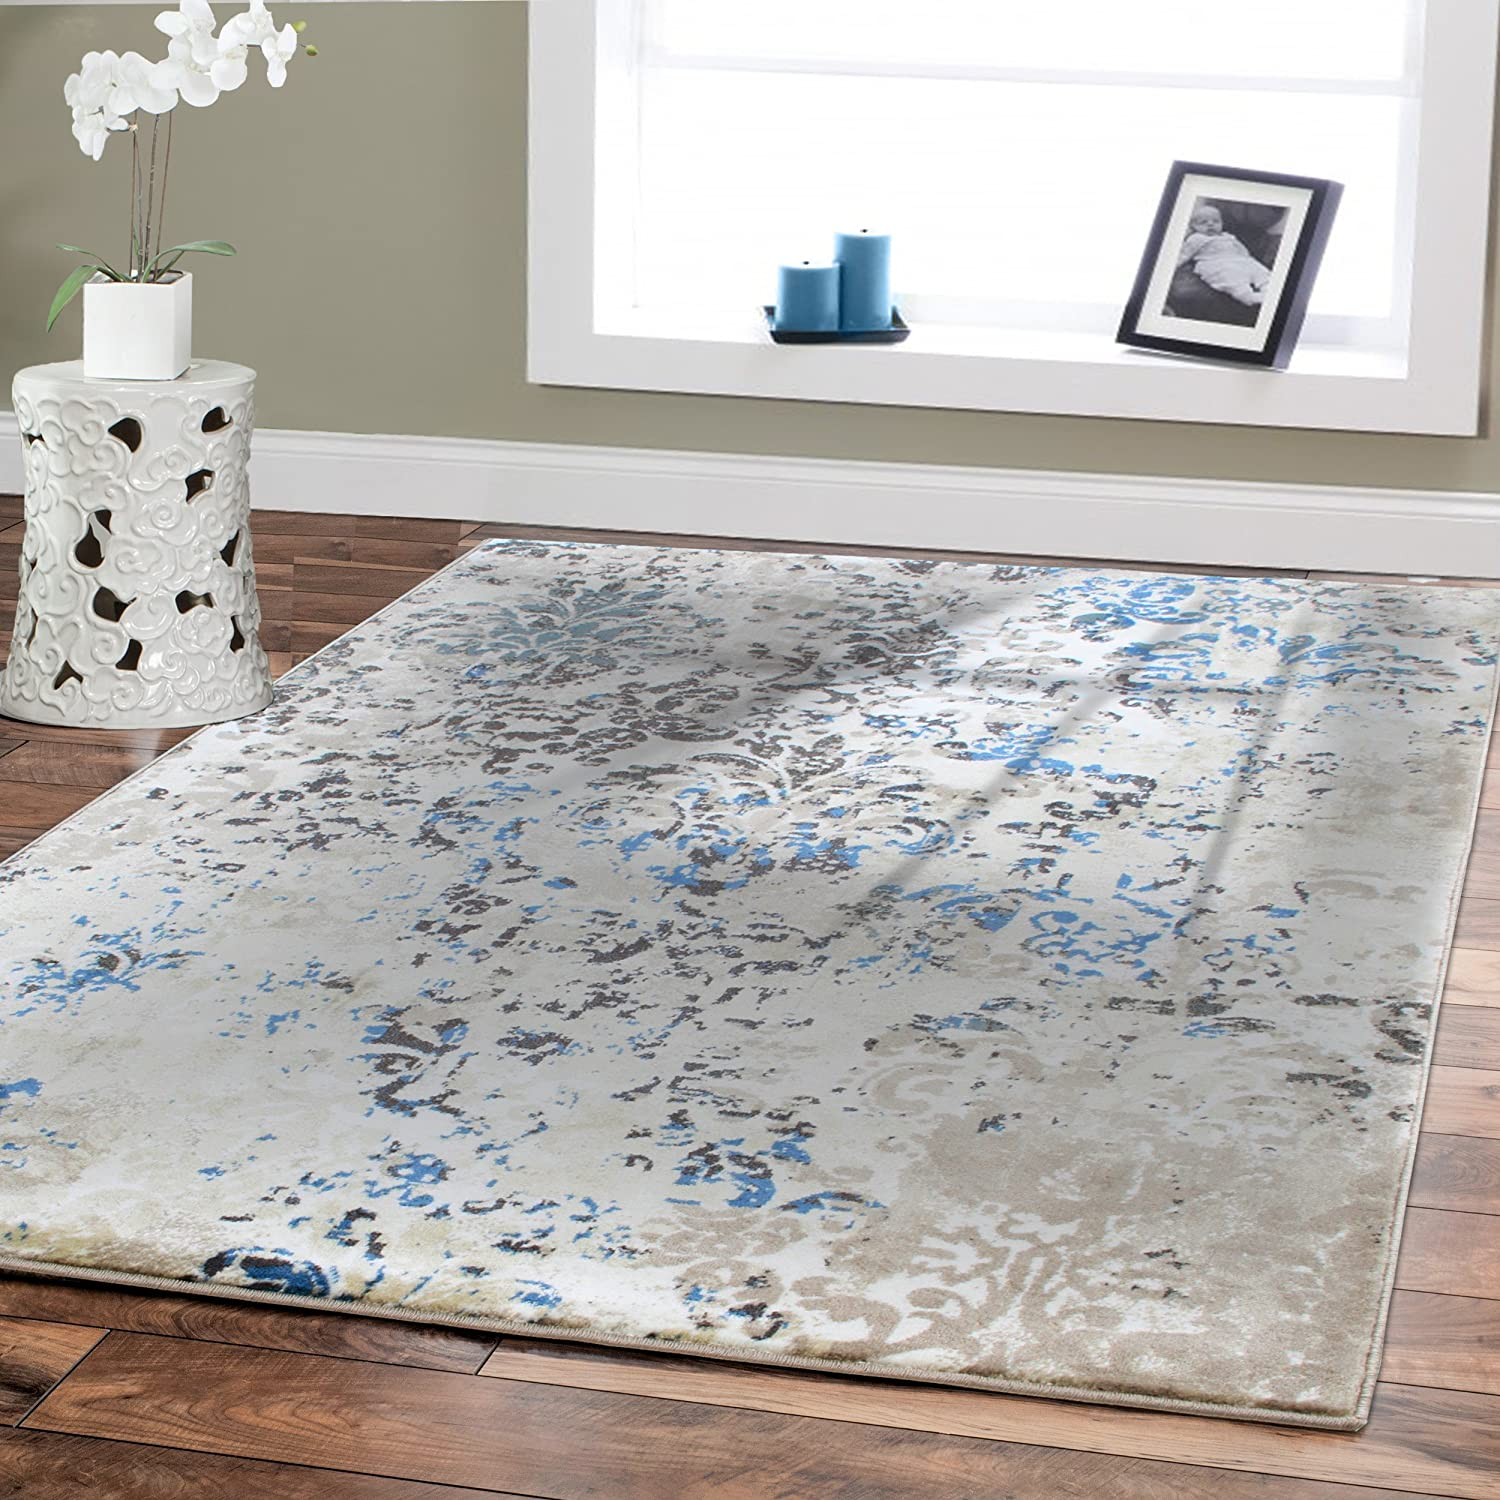 Amazon.com: Premium Soft Contemporary Rug For Living Room Luxury 5x8 Cream  Blue Brown Beige Area Rugs Modern Rugs 5x7 Bedroom Office Area Rugs  Clearance ...